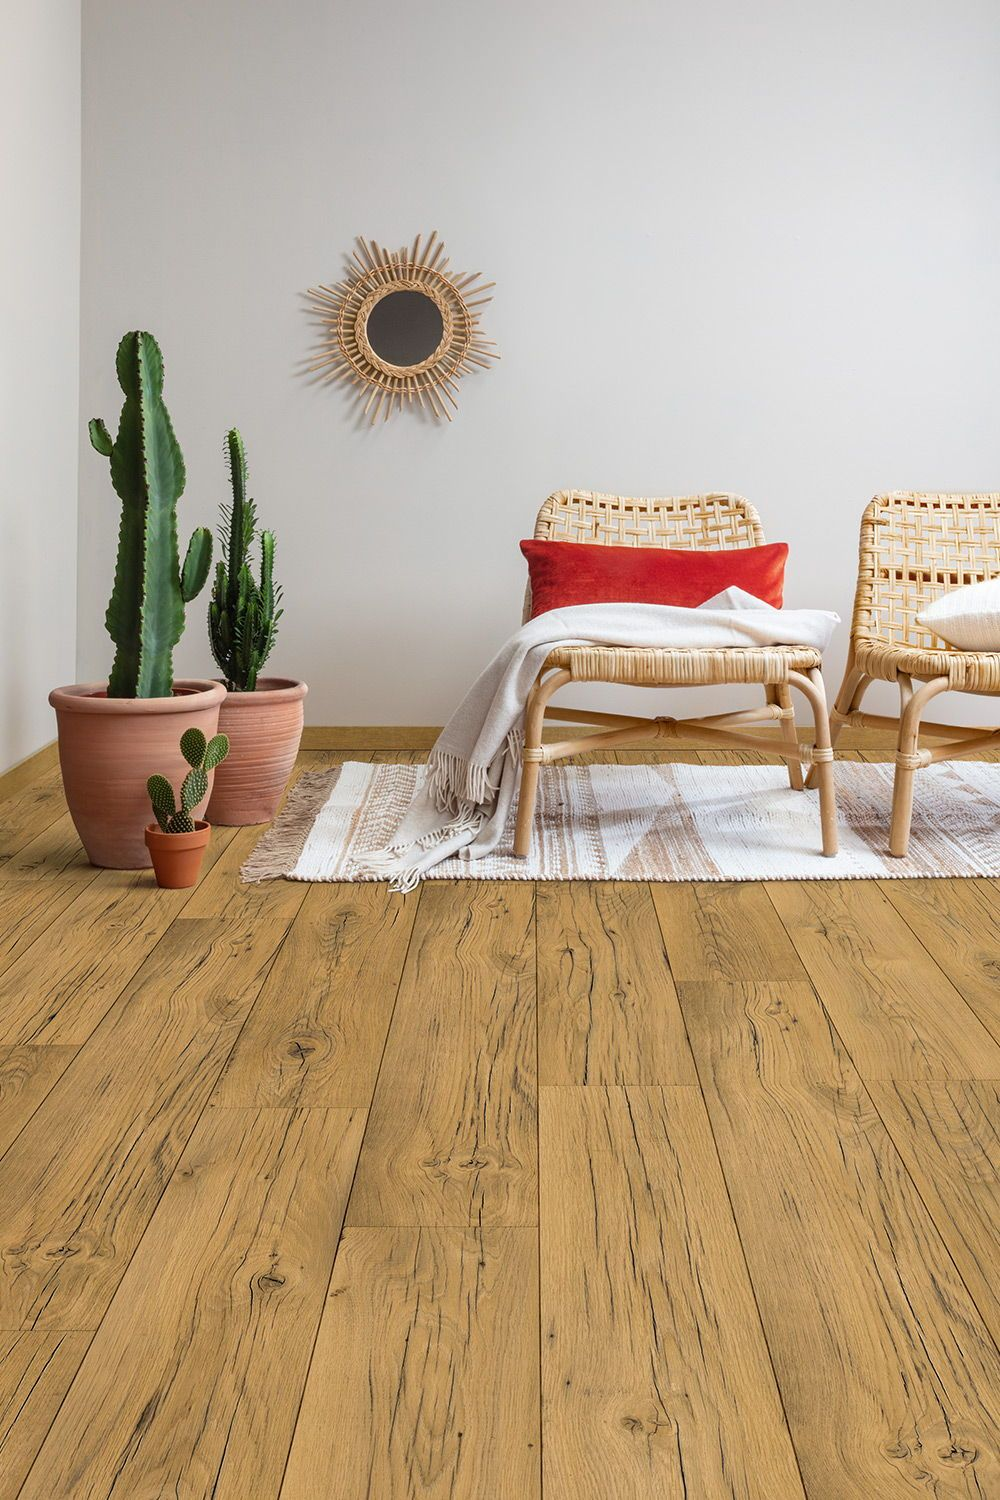 56 Country Interiors Ideas In 2021, Country Living Laminate Flooring